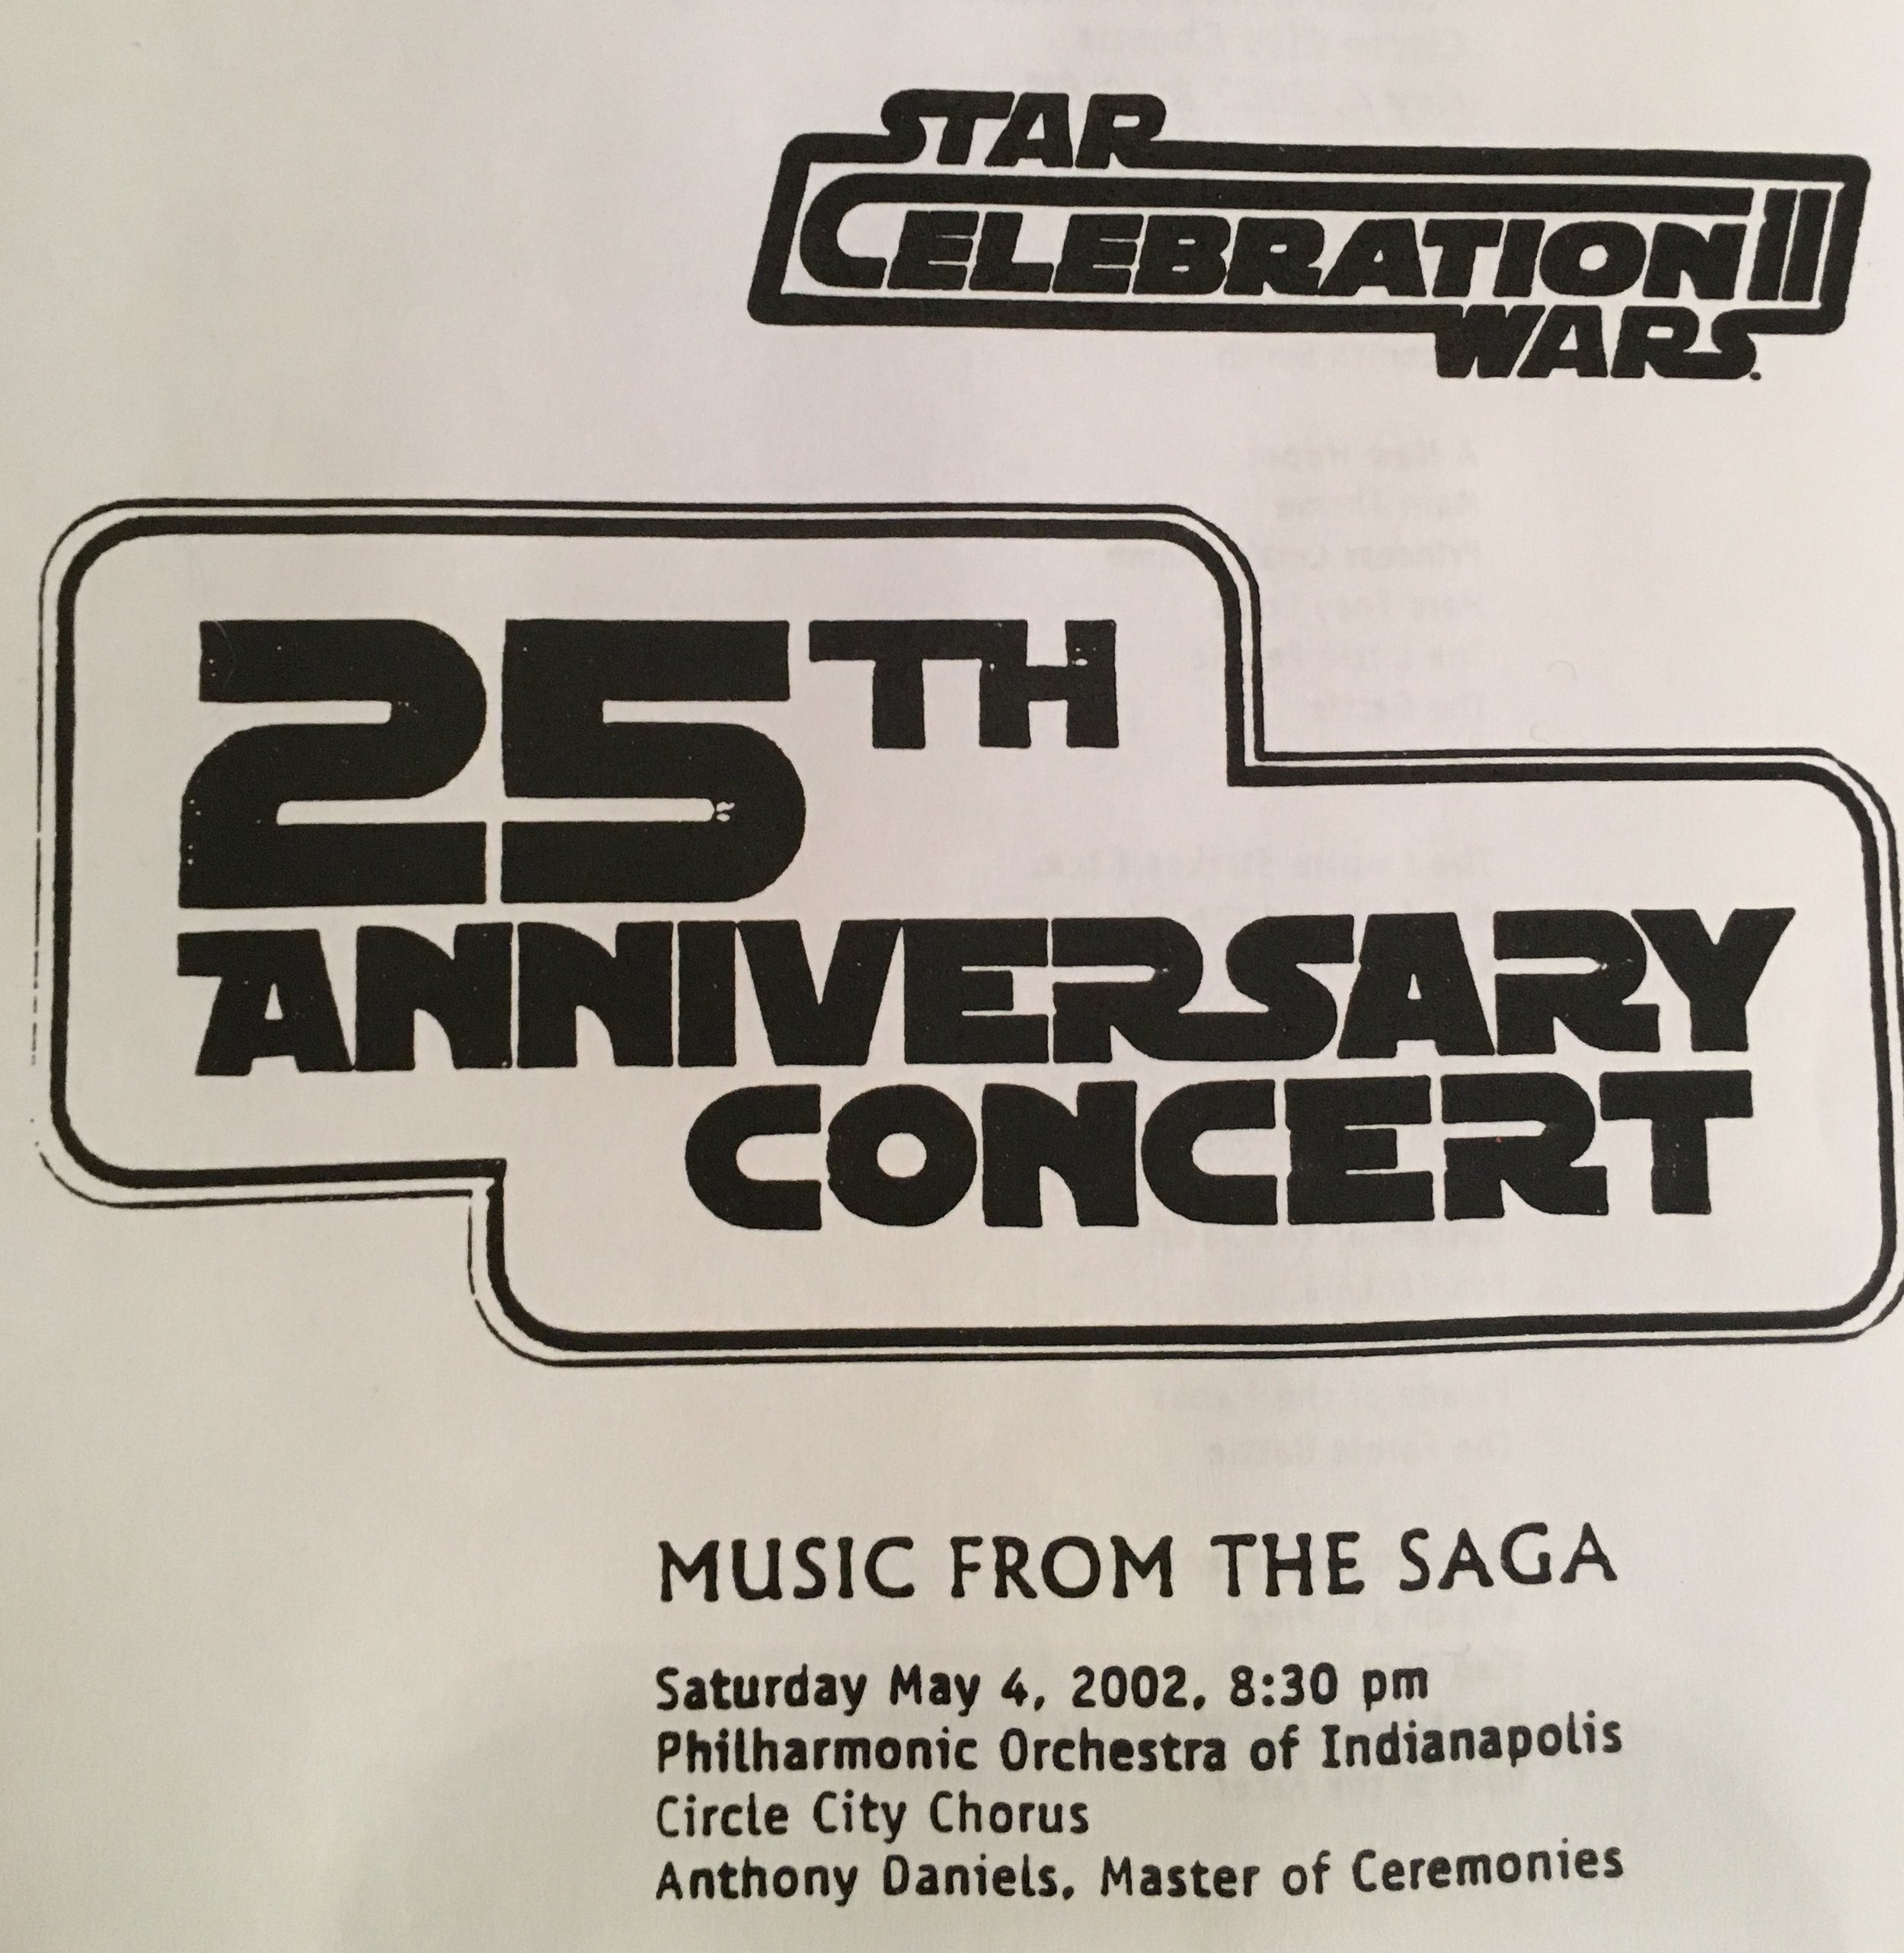 Scan of program cover from the concert